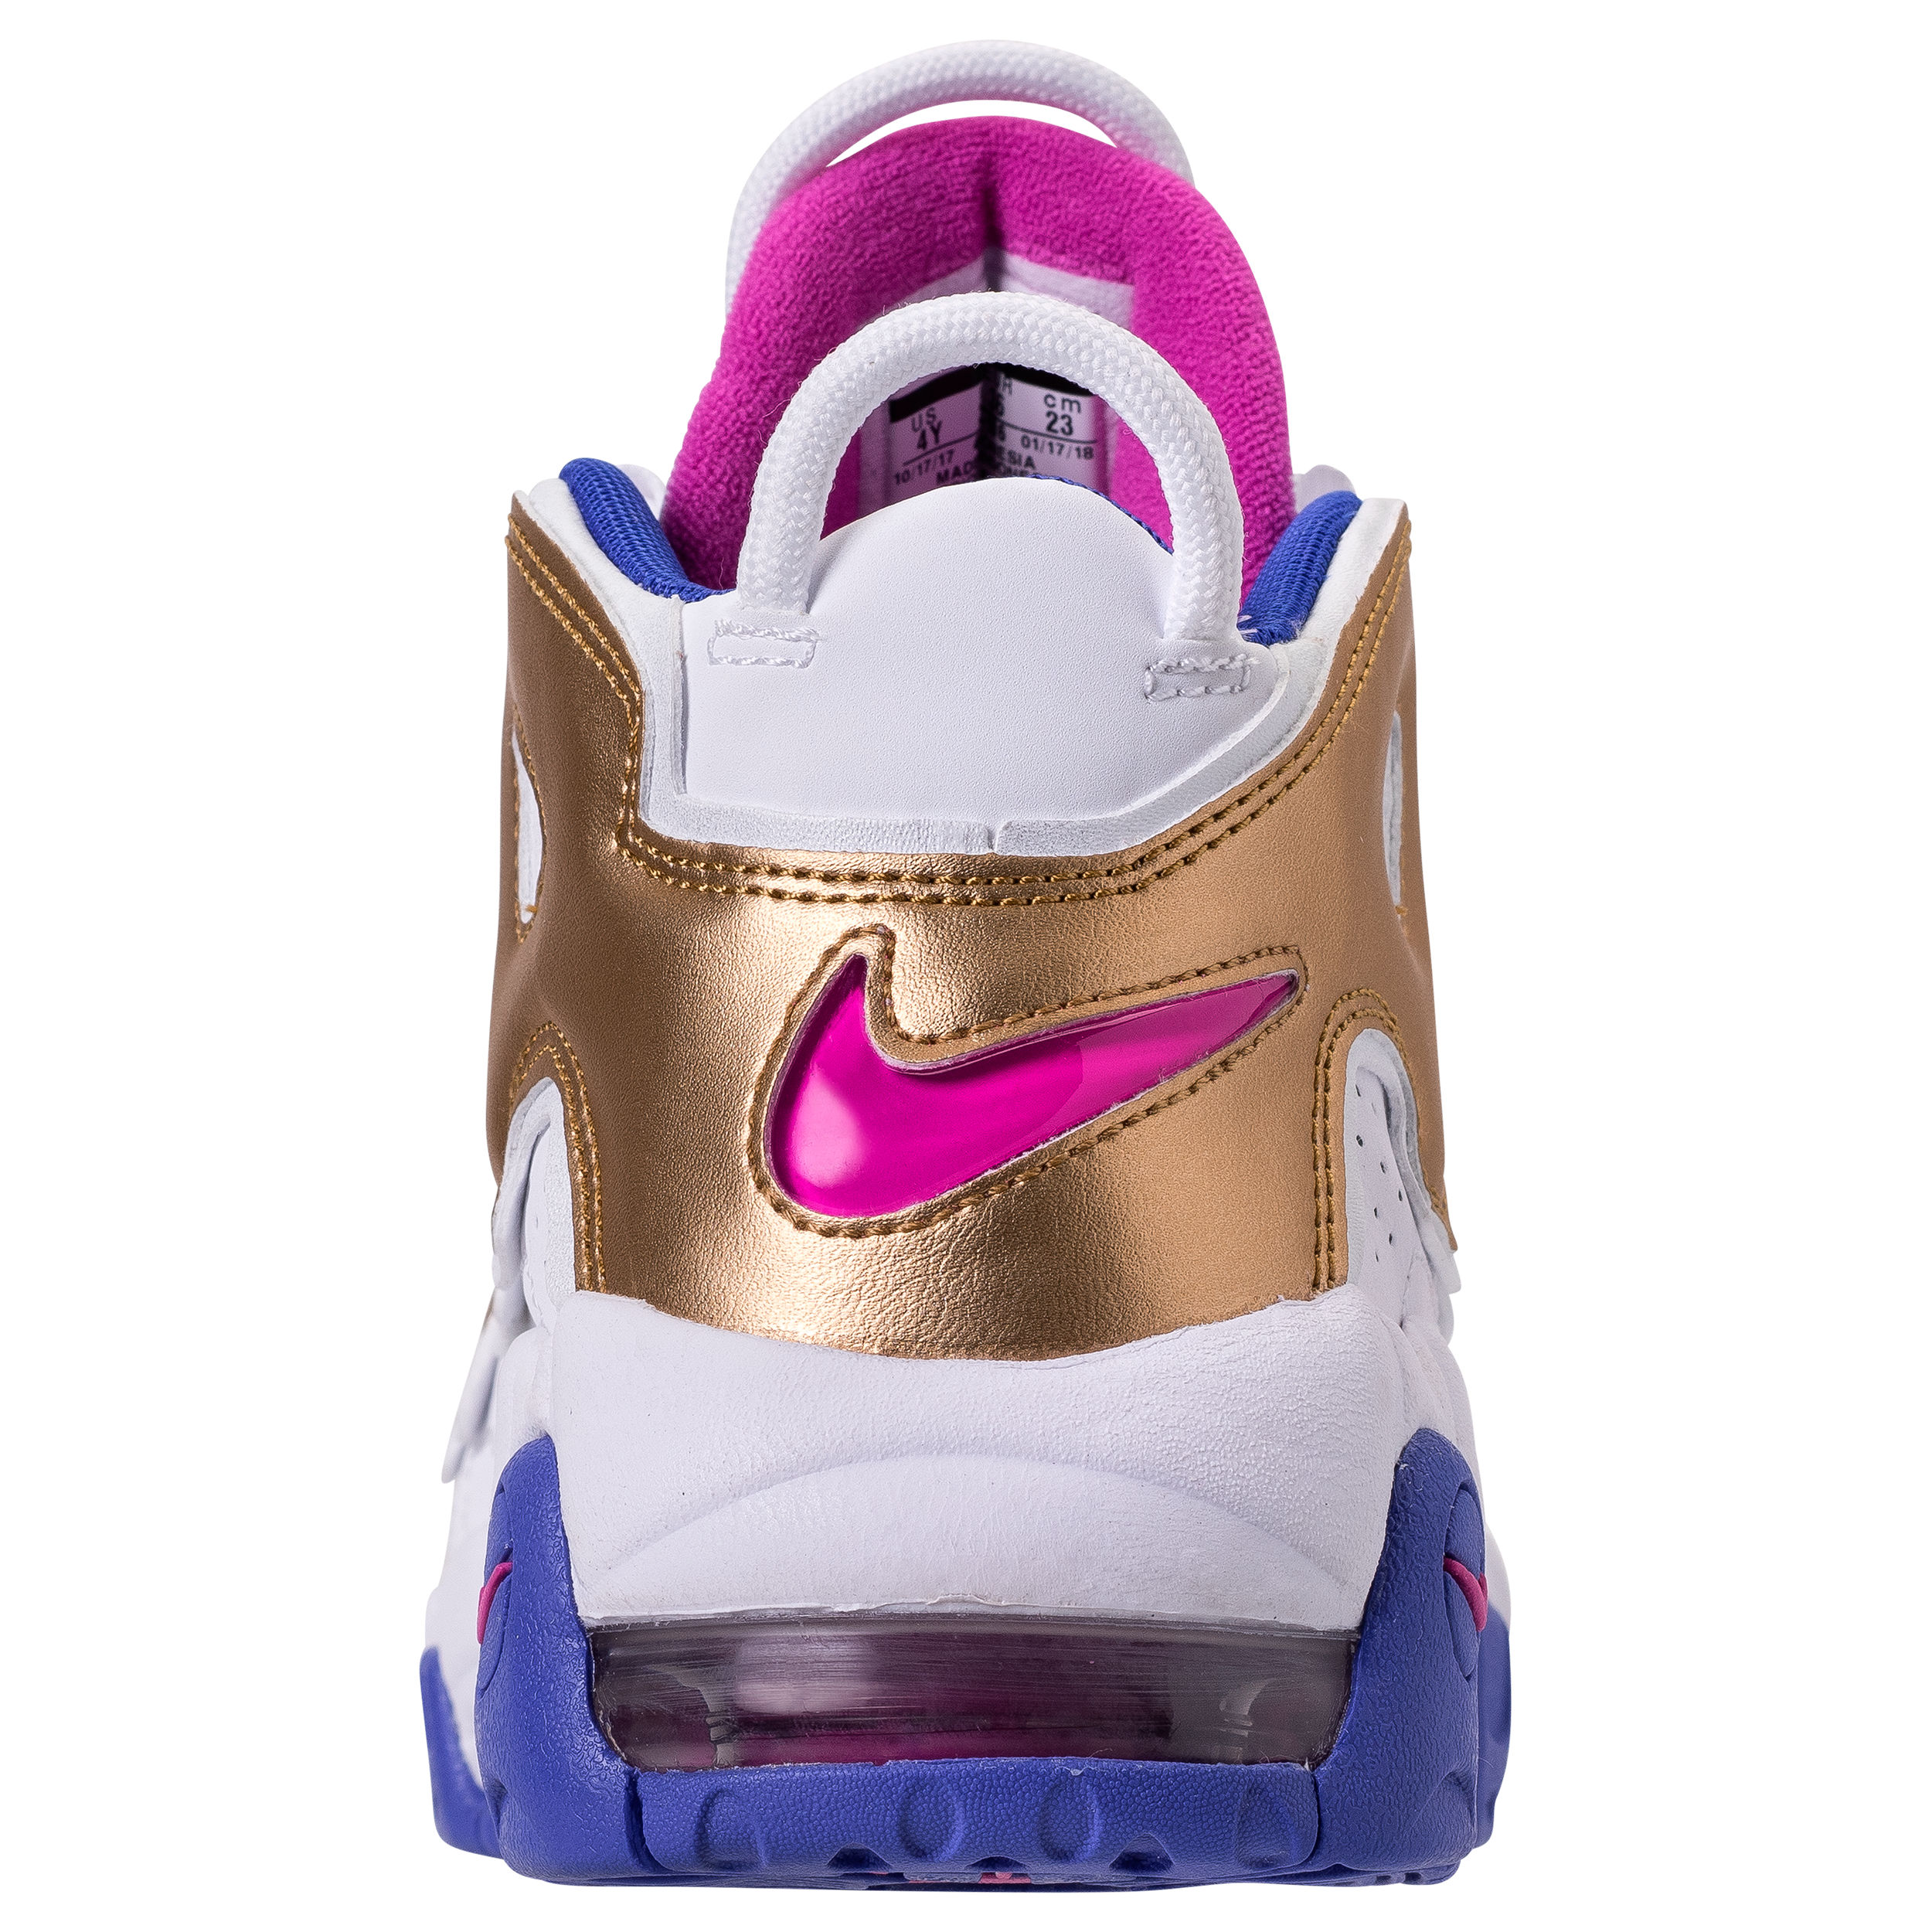 NIKE AIR MORE UPTEMPO GS WHITE:FUSCIA BLAST:METALLIC GOLD:RACER BLUE 3